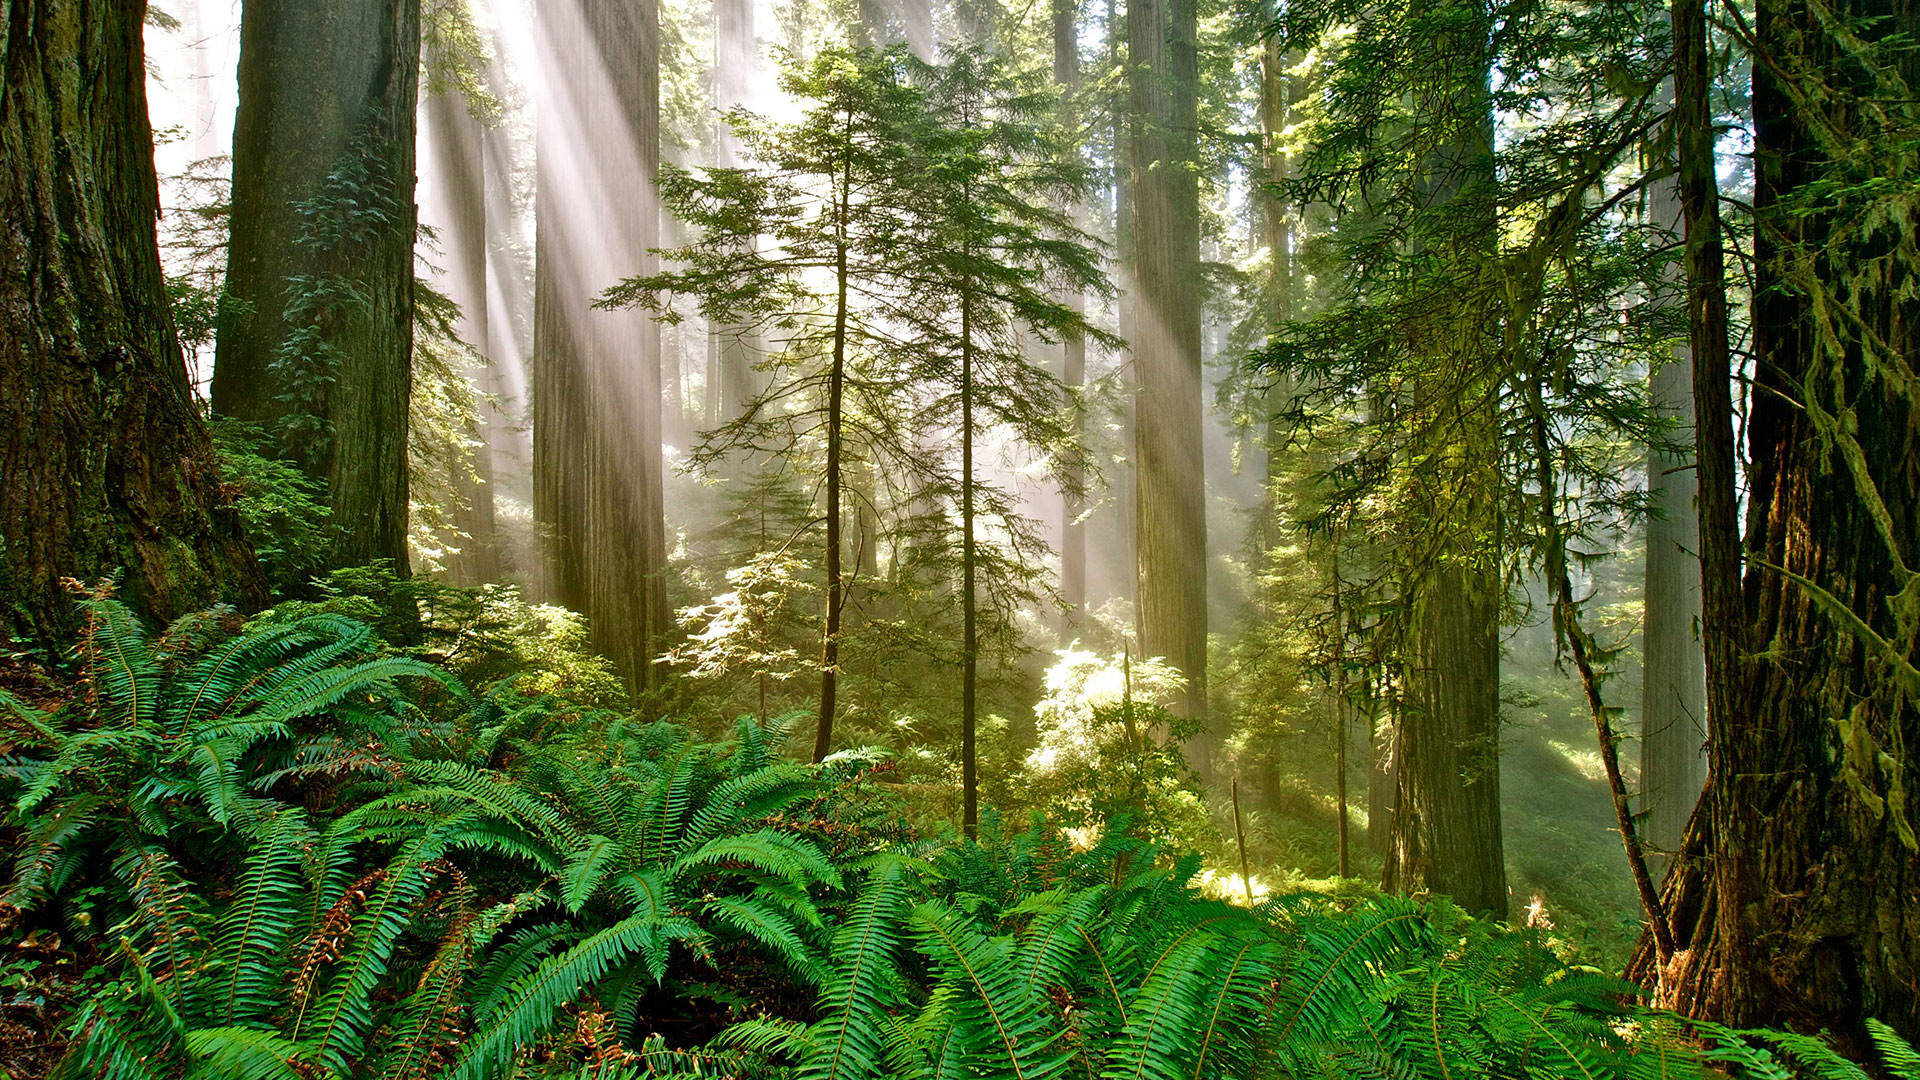 Courtesy of Del Norte Coast Redwoods State Park